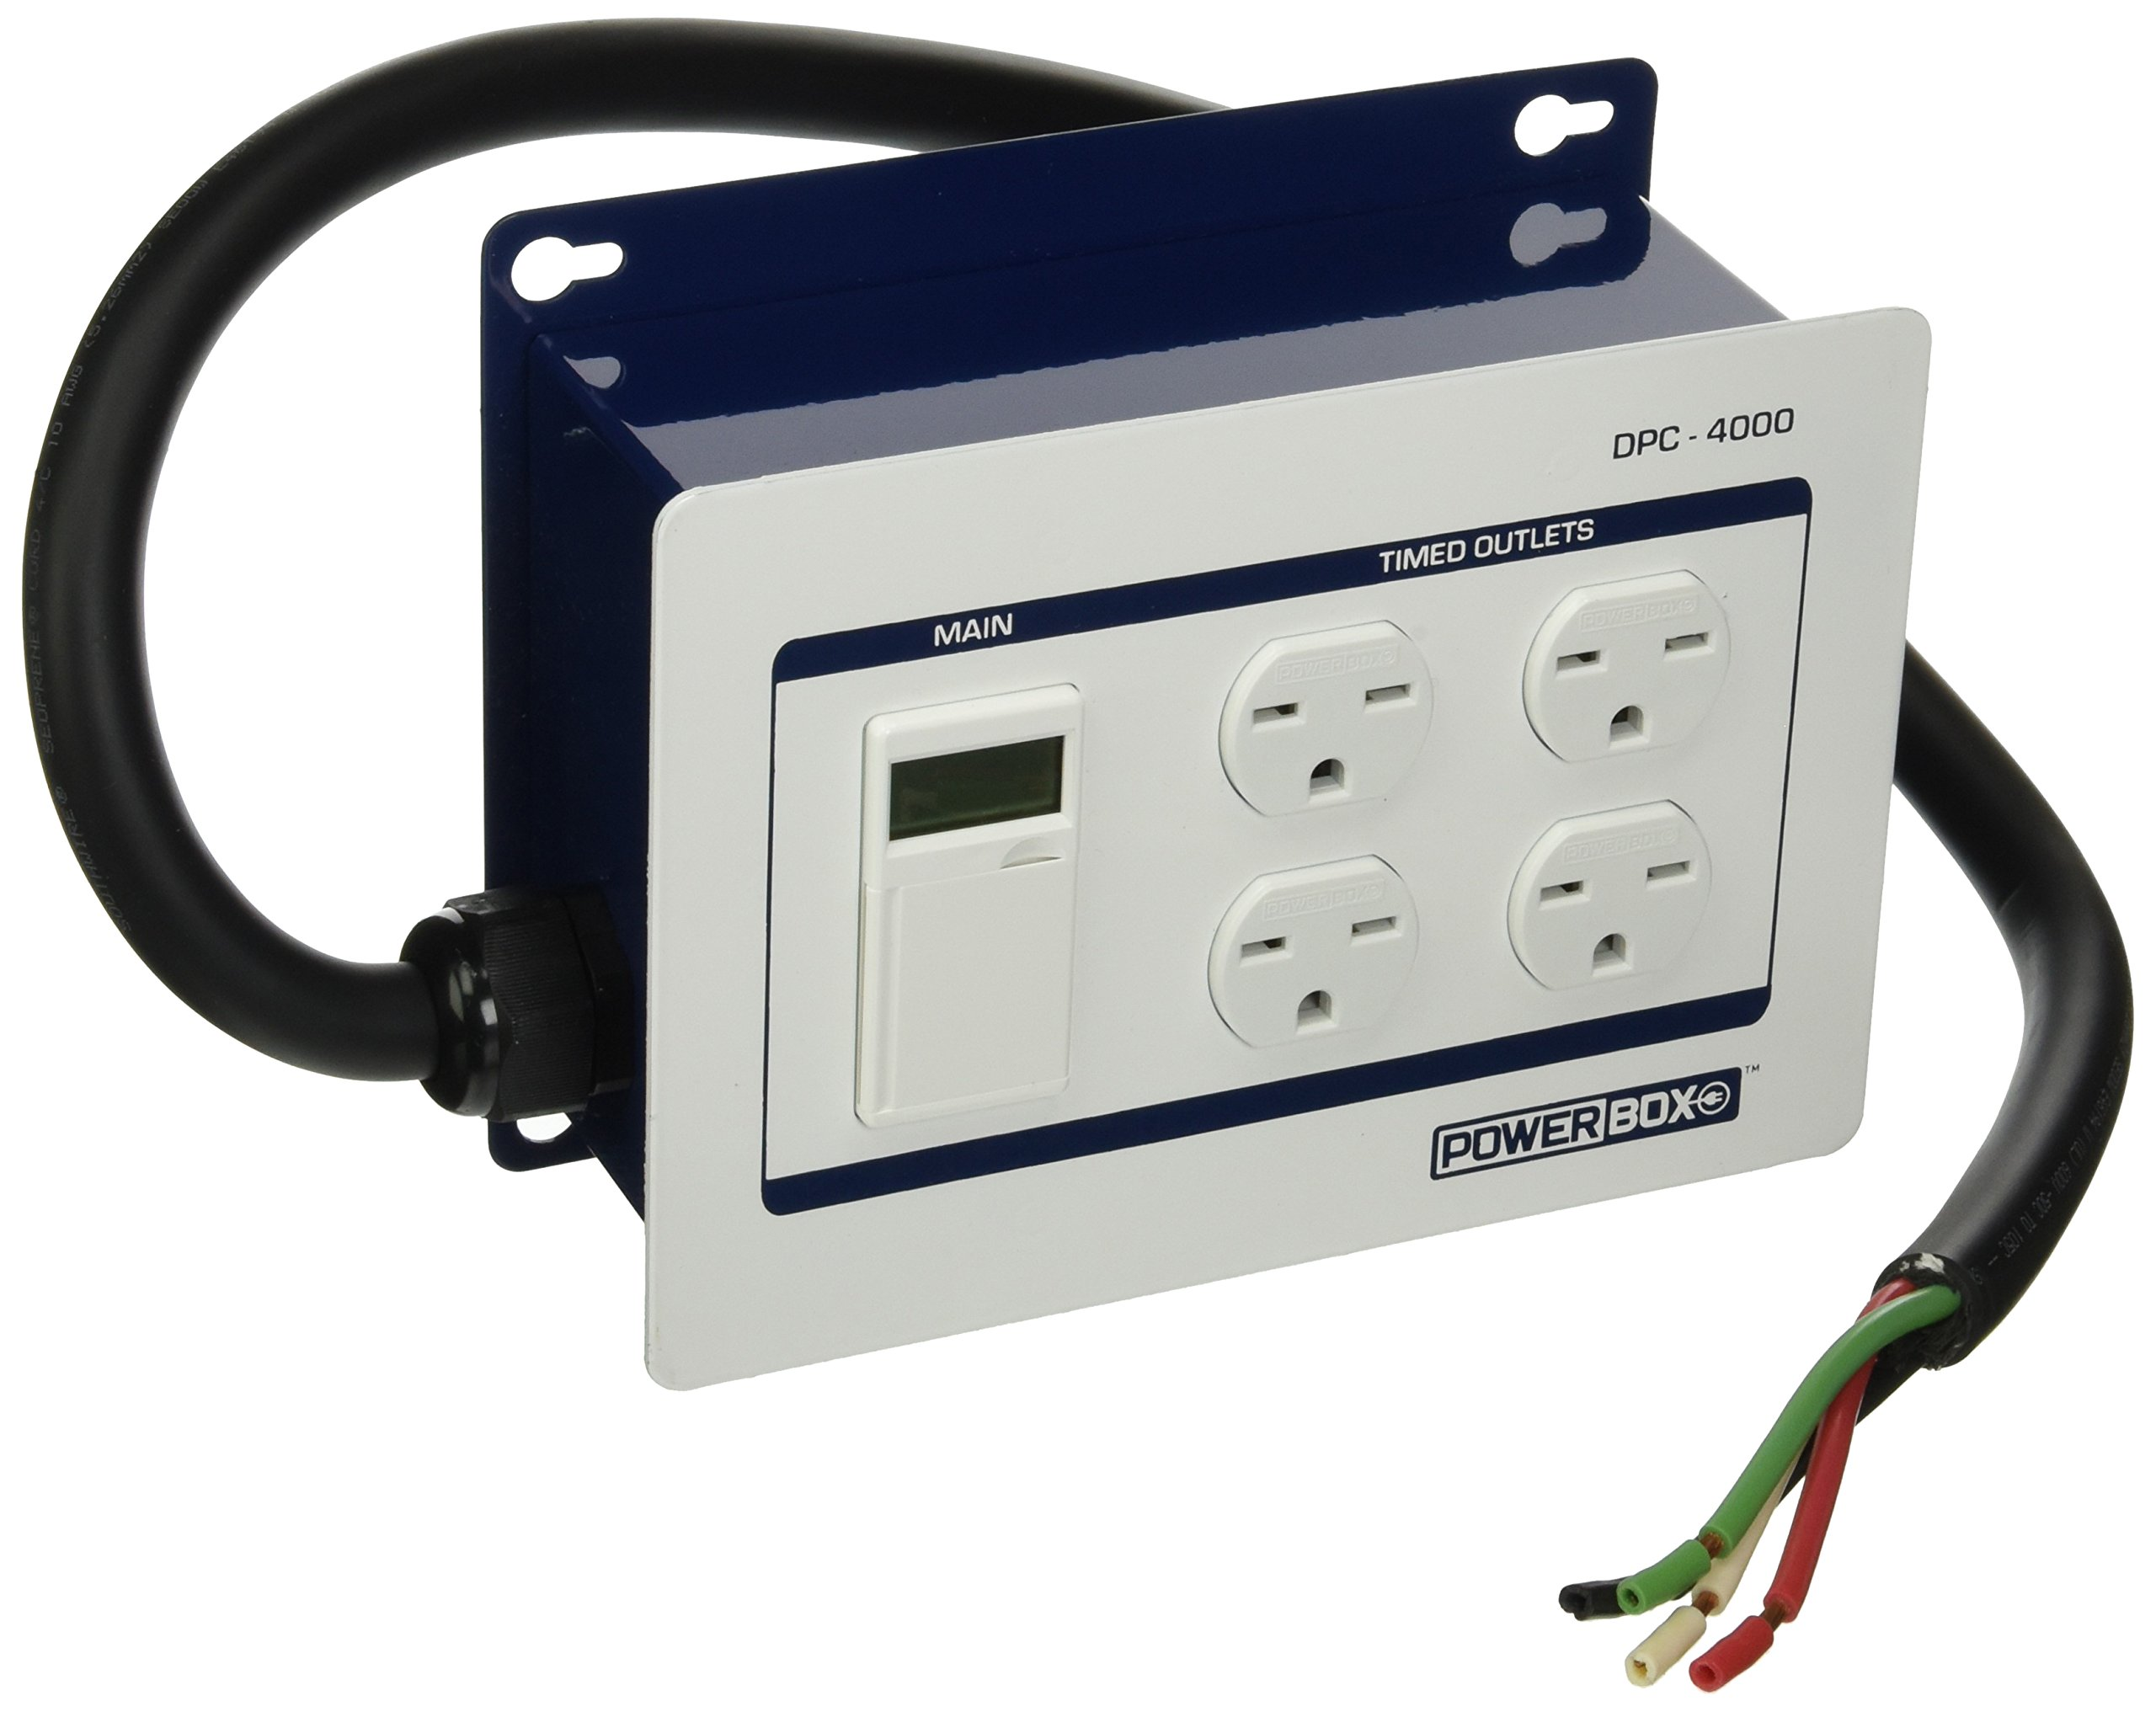 Power Box DPC-4000-240V-4HW (30Amp, Four 240V Outlets) Hardwire, 4 Wire